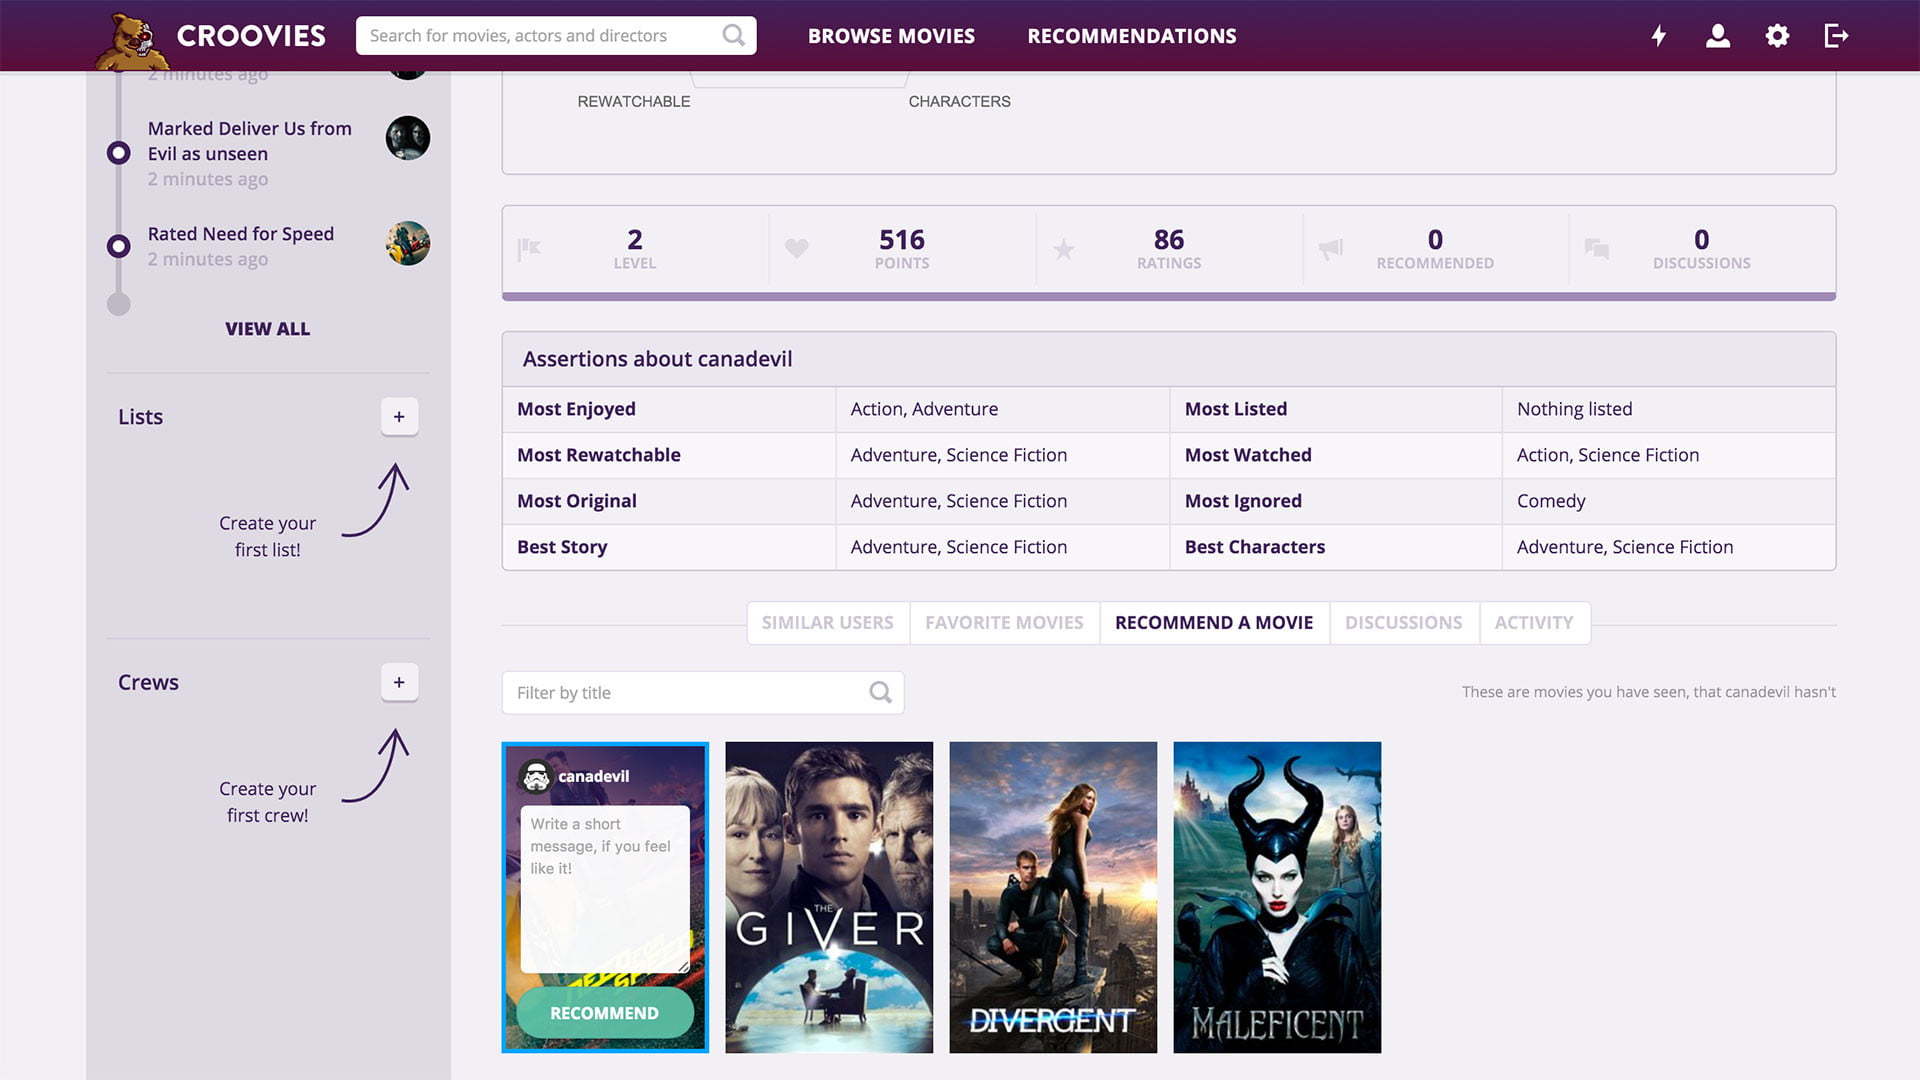 croovies movie ratings and recommendations screenshot 7